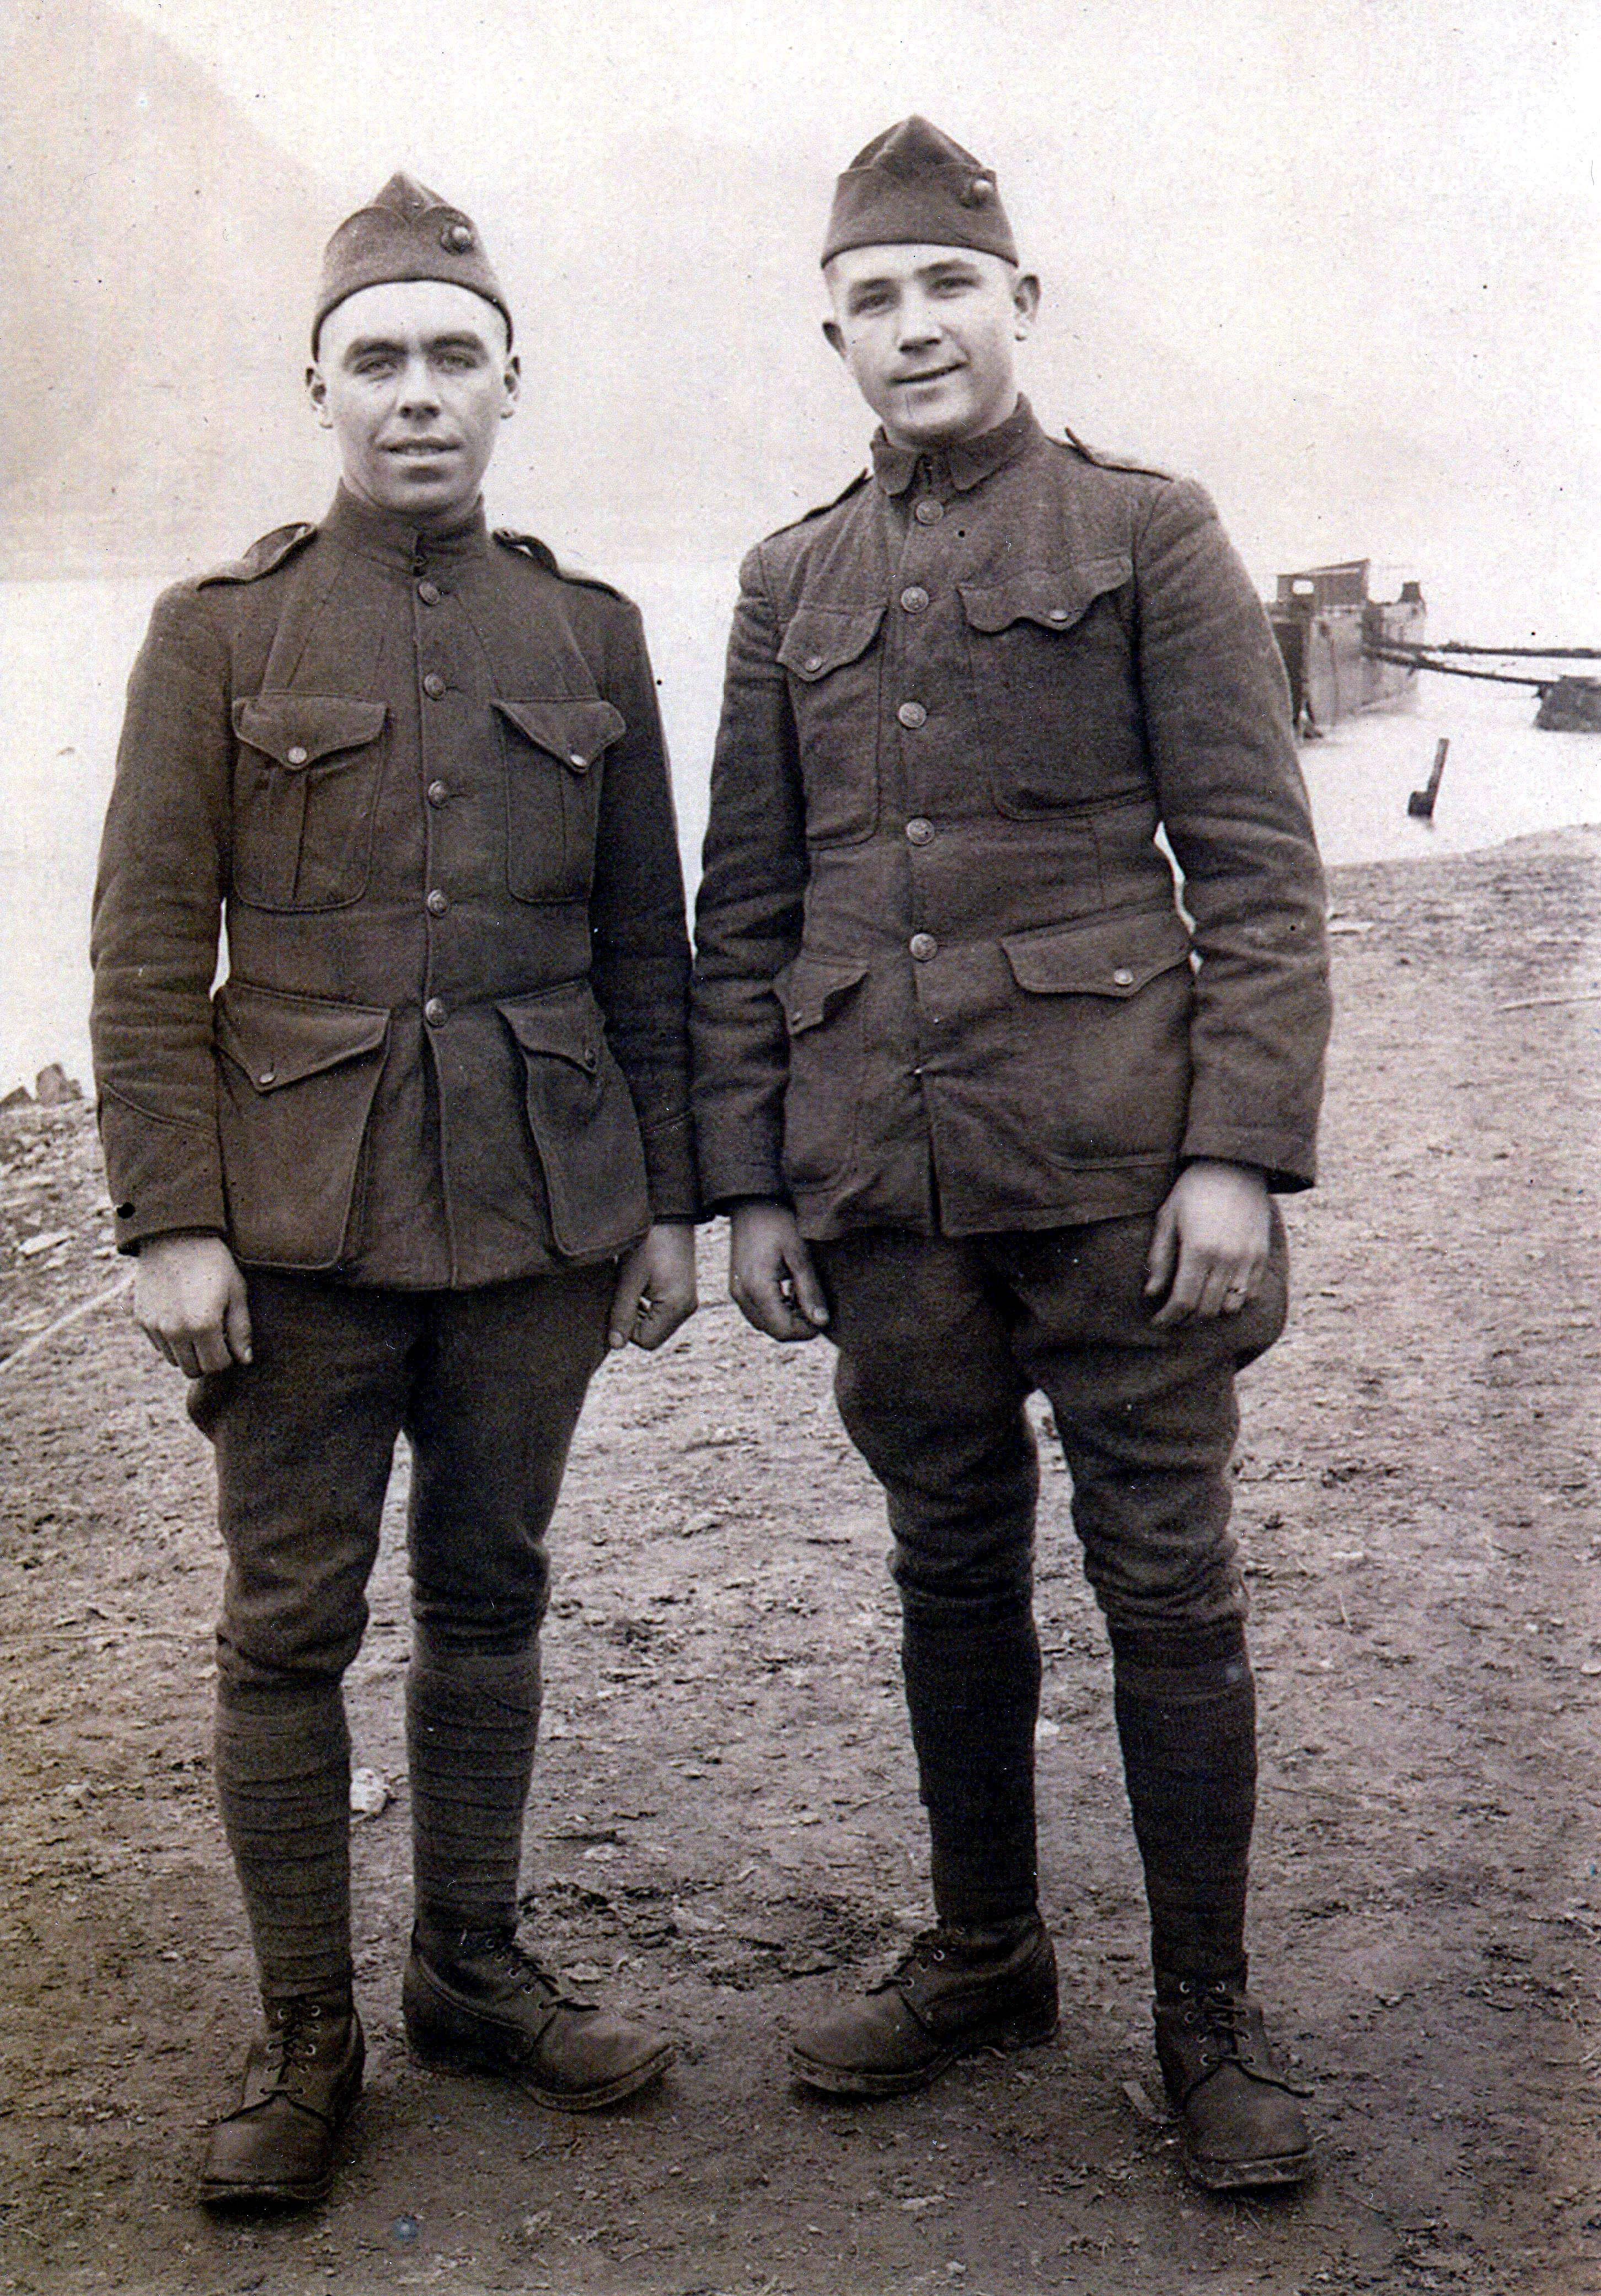 Private Raymond Reinke on left